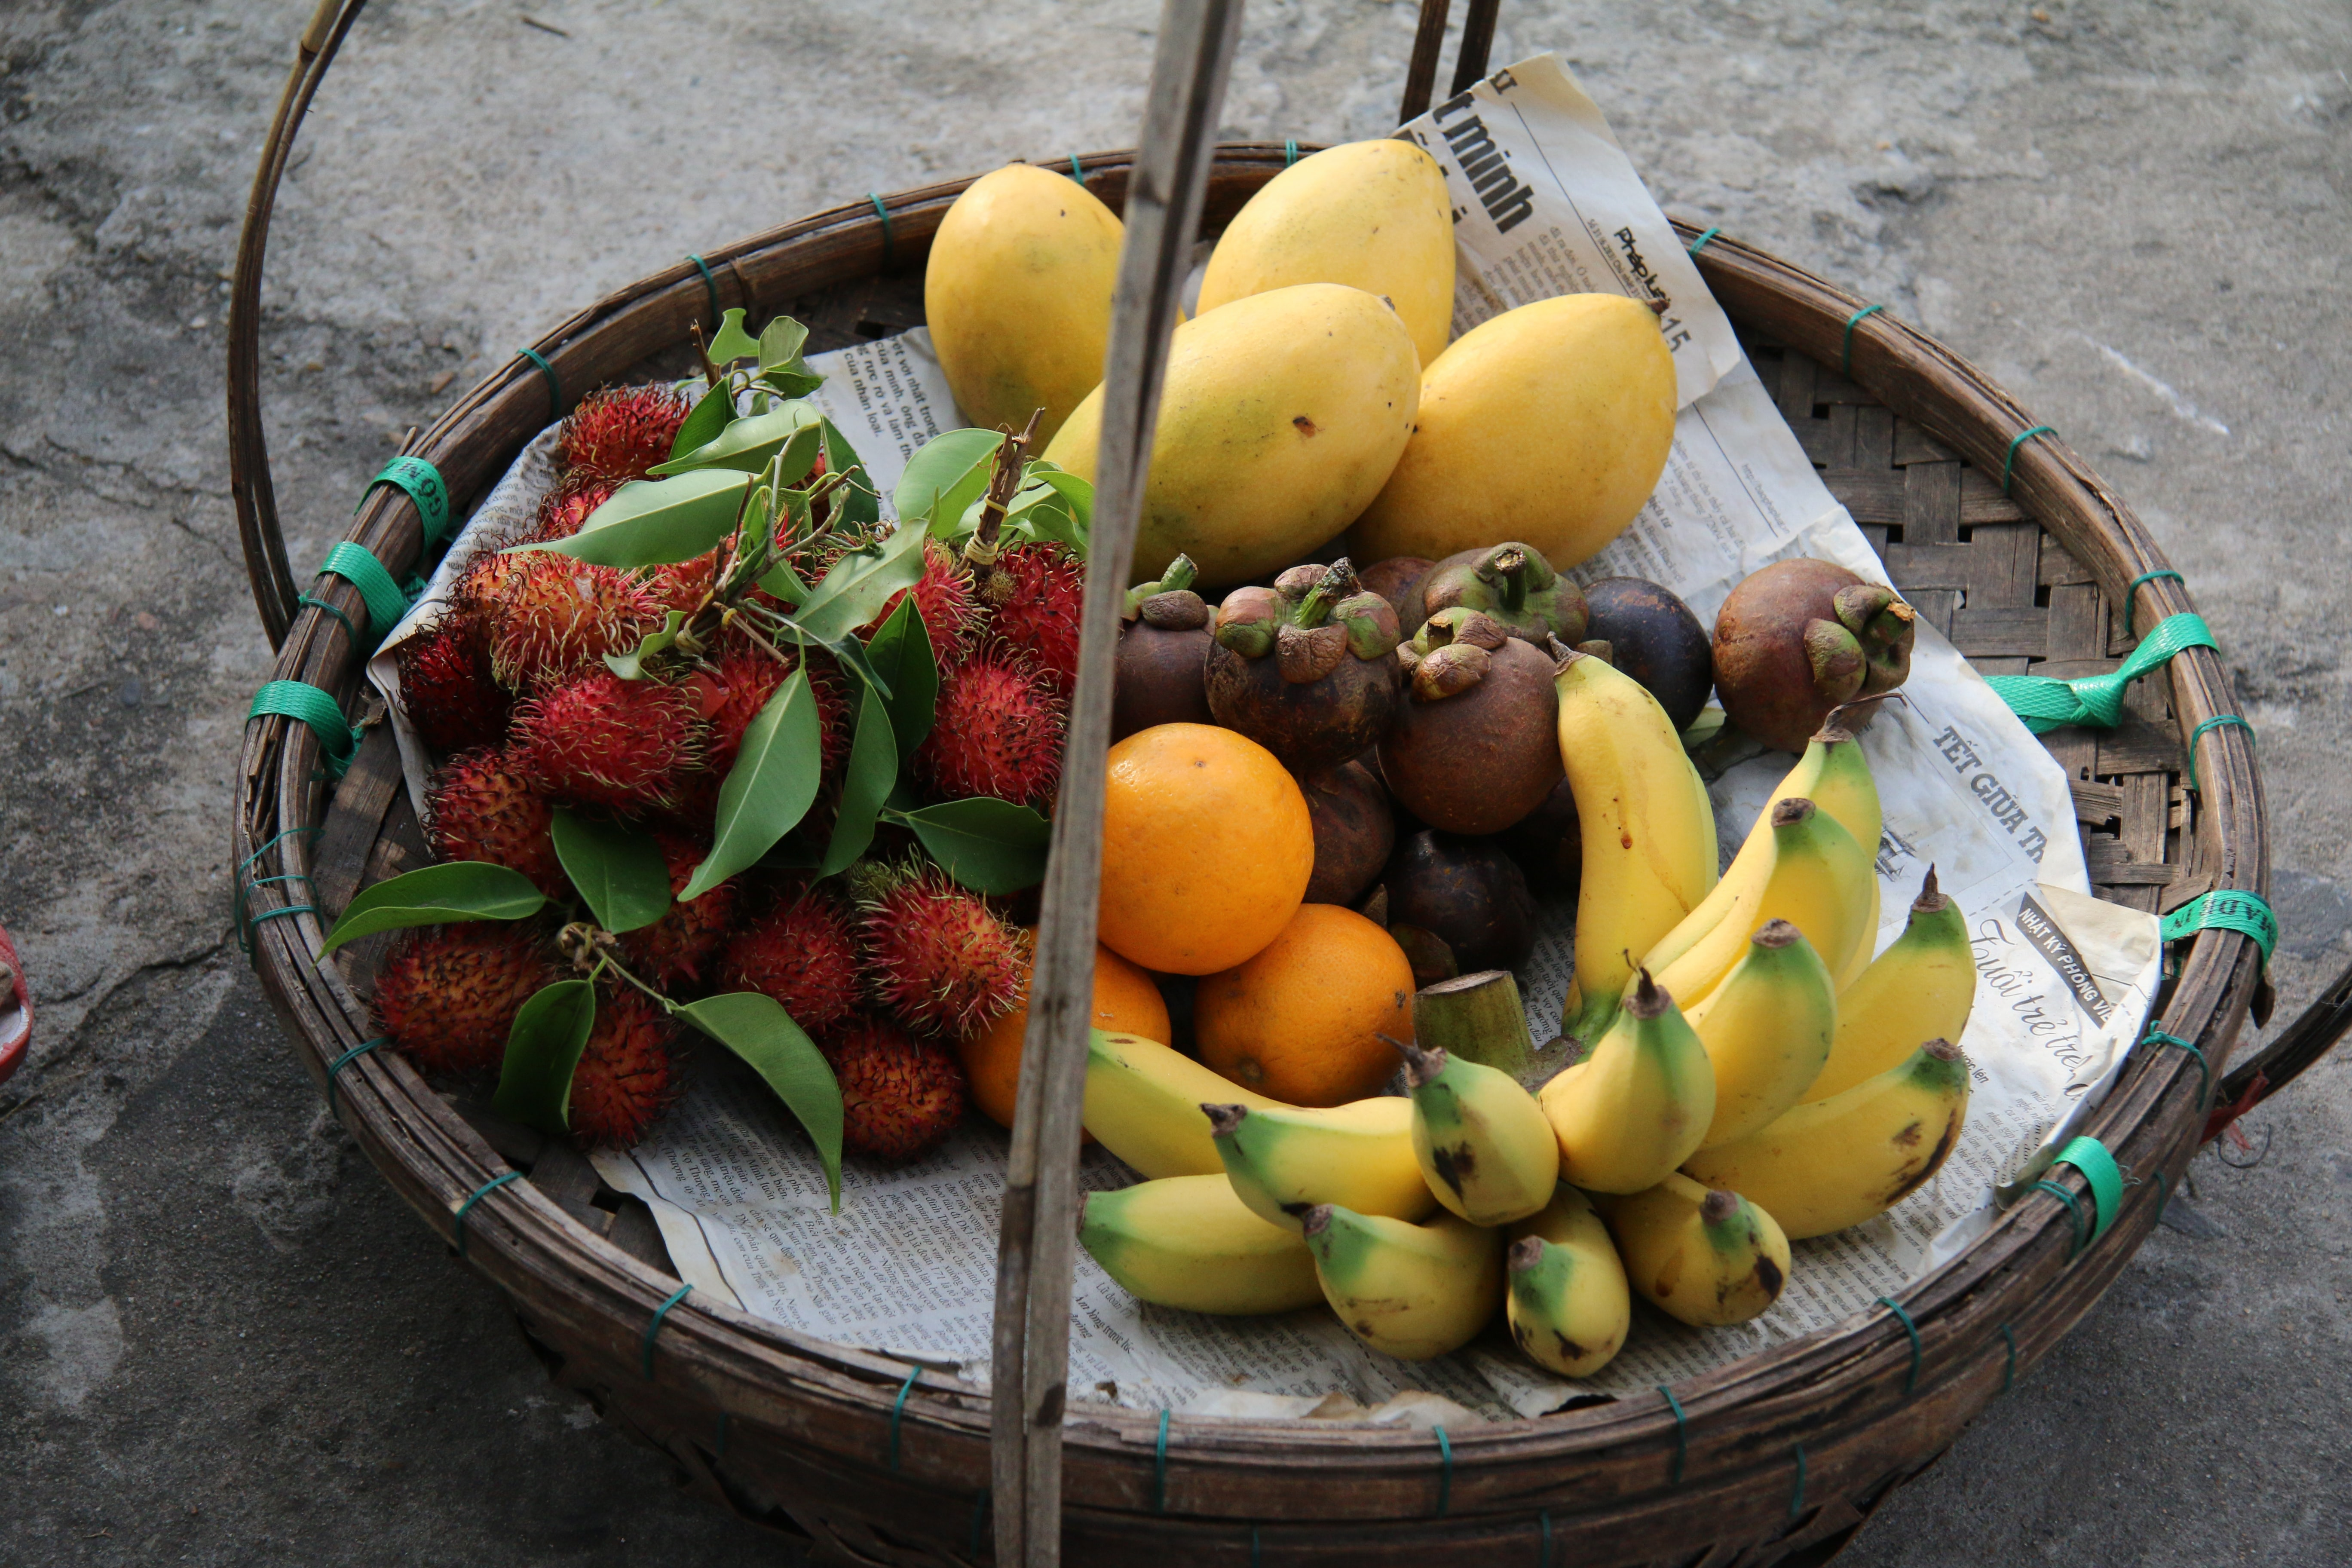 basket of yellow bananas, yellow mangoes, red rambutan fruits, oranges, and mangosteen fruits